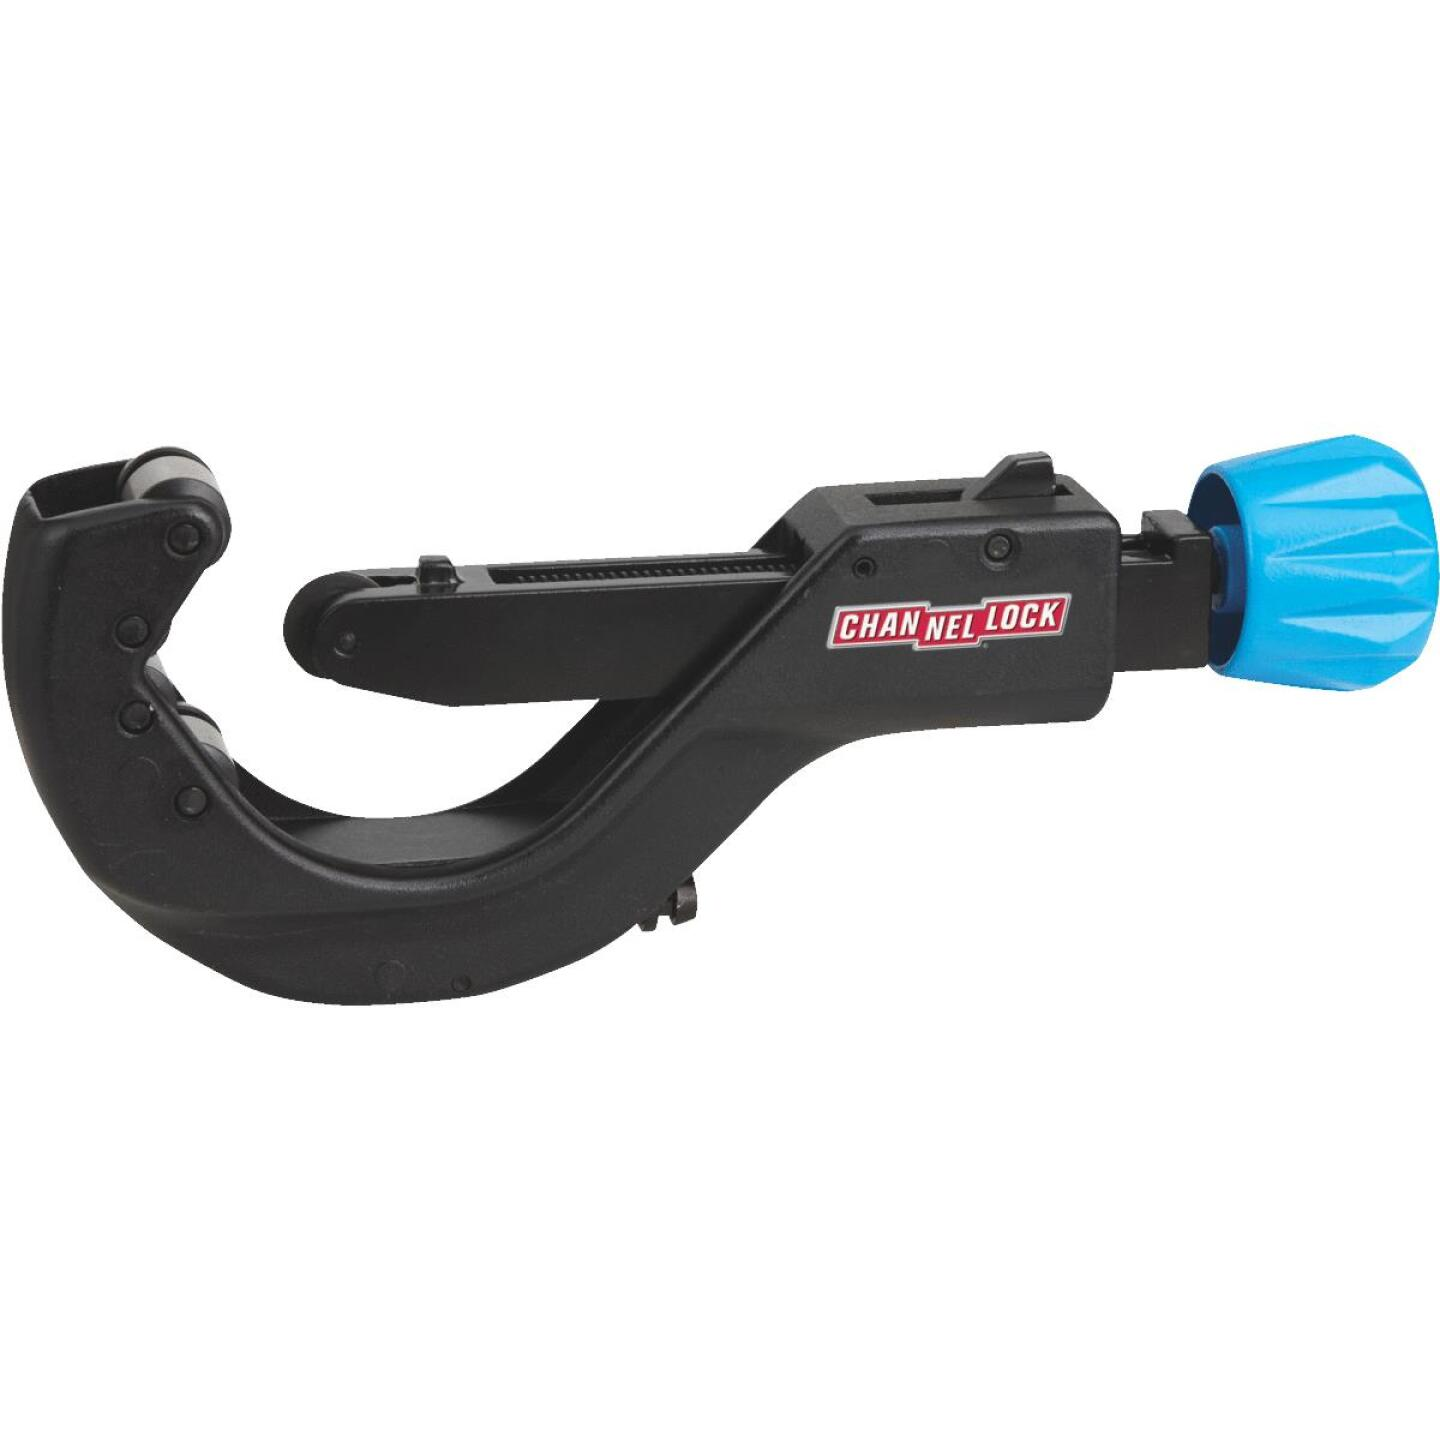 Channellock Up to 2-5/8 In. Copper, Aluminum or Stainless Steel Tubing Cutter Image 1